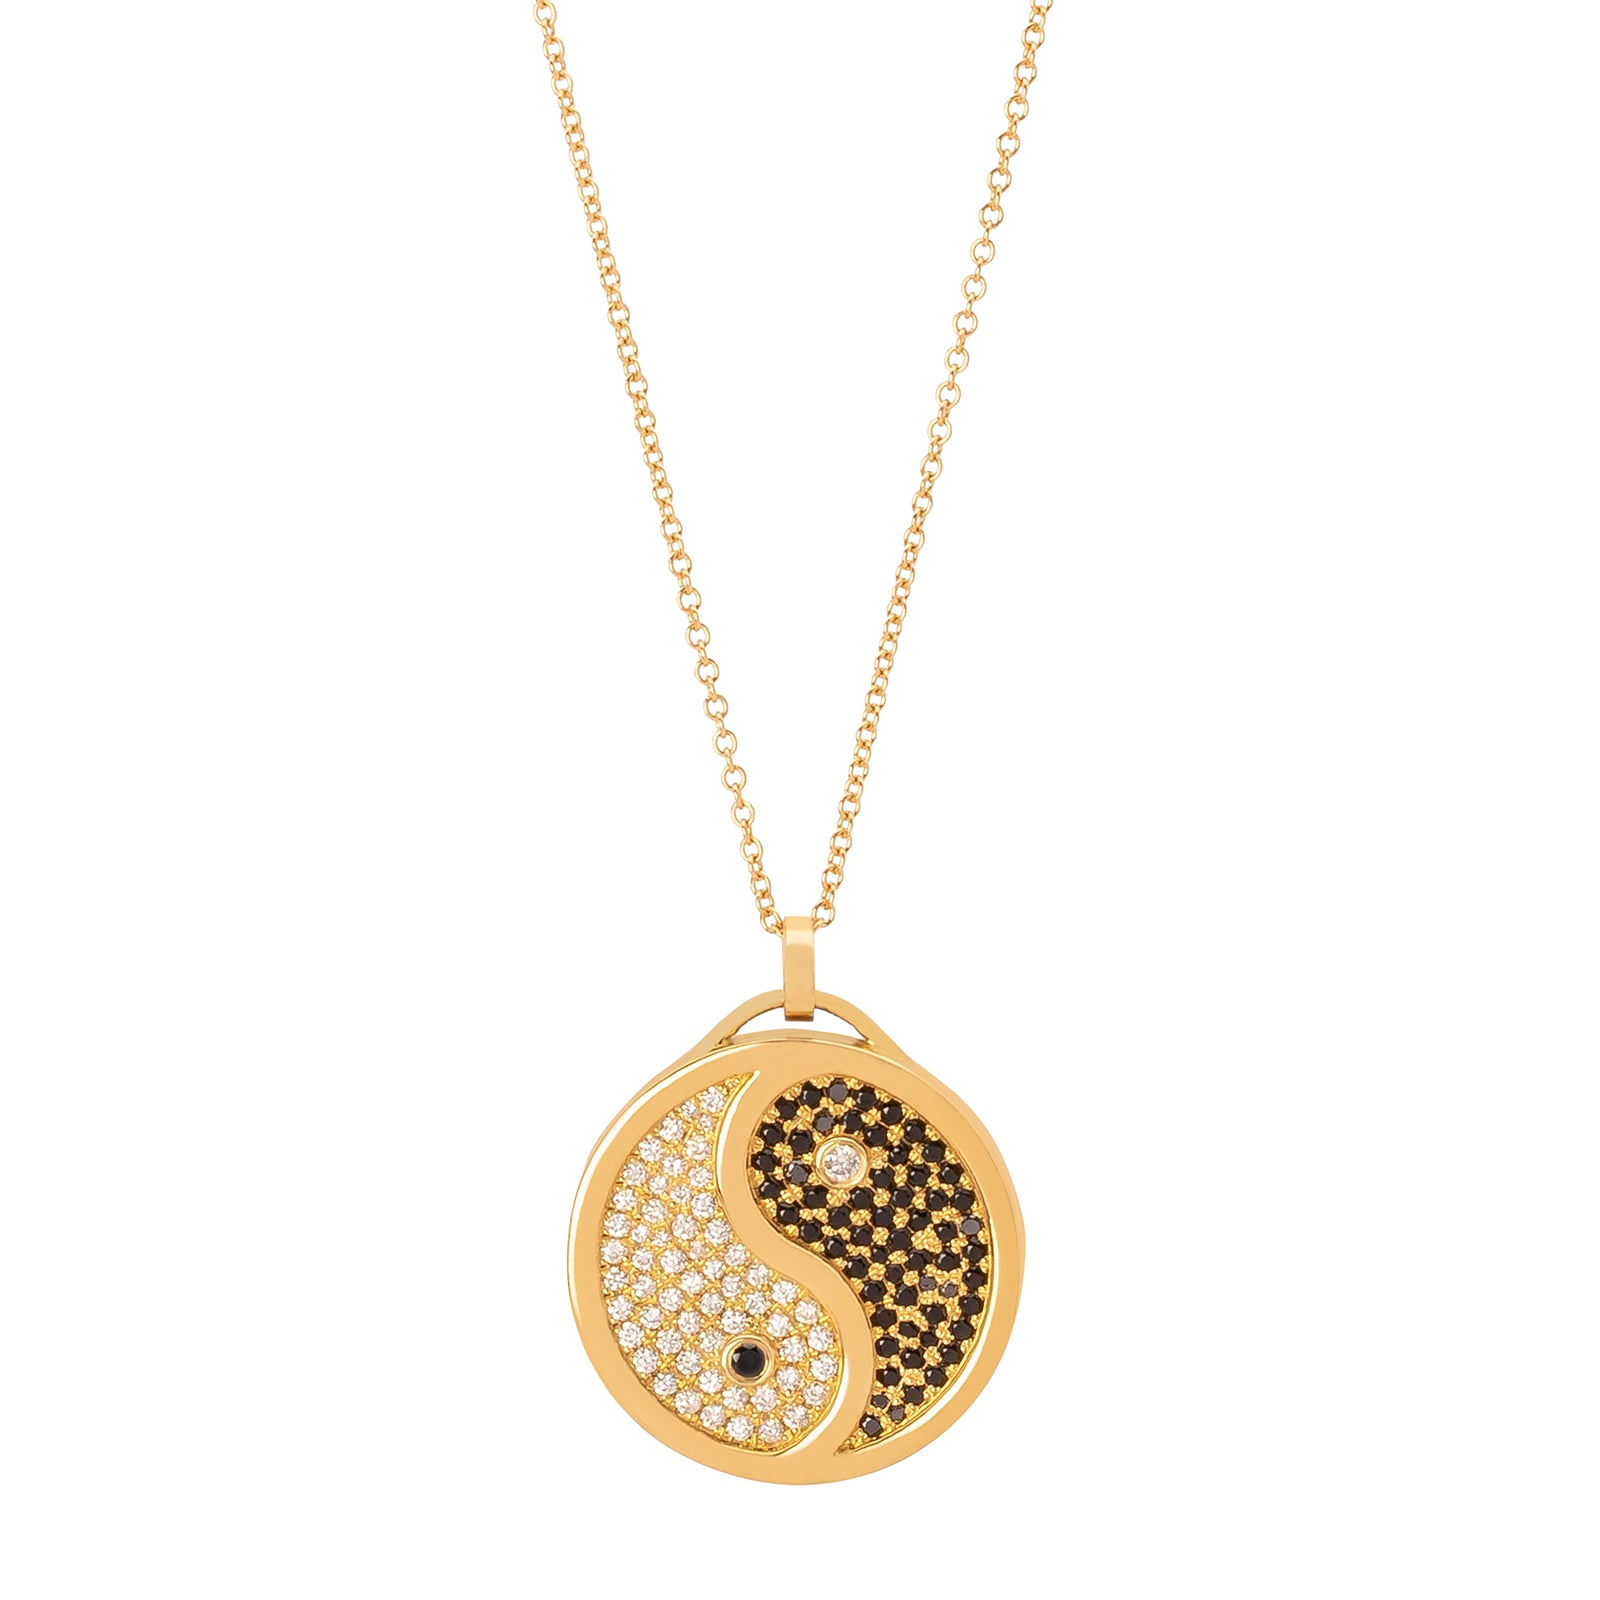 Established Jewelry Yin Yang Pendant Necklace - Necklaces - Broken English Jewelry